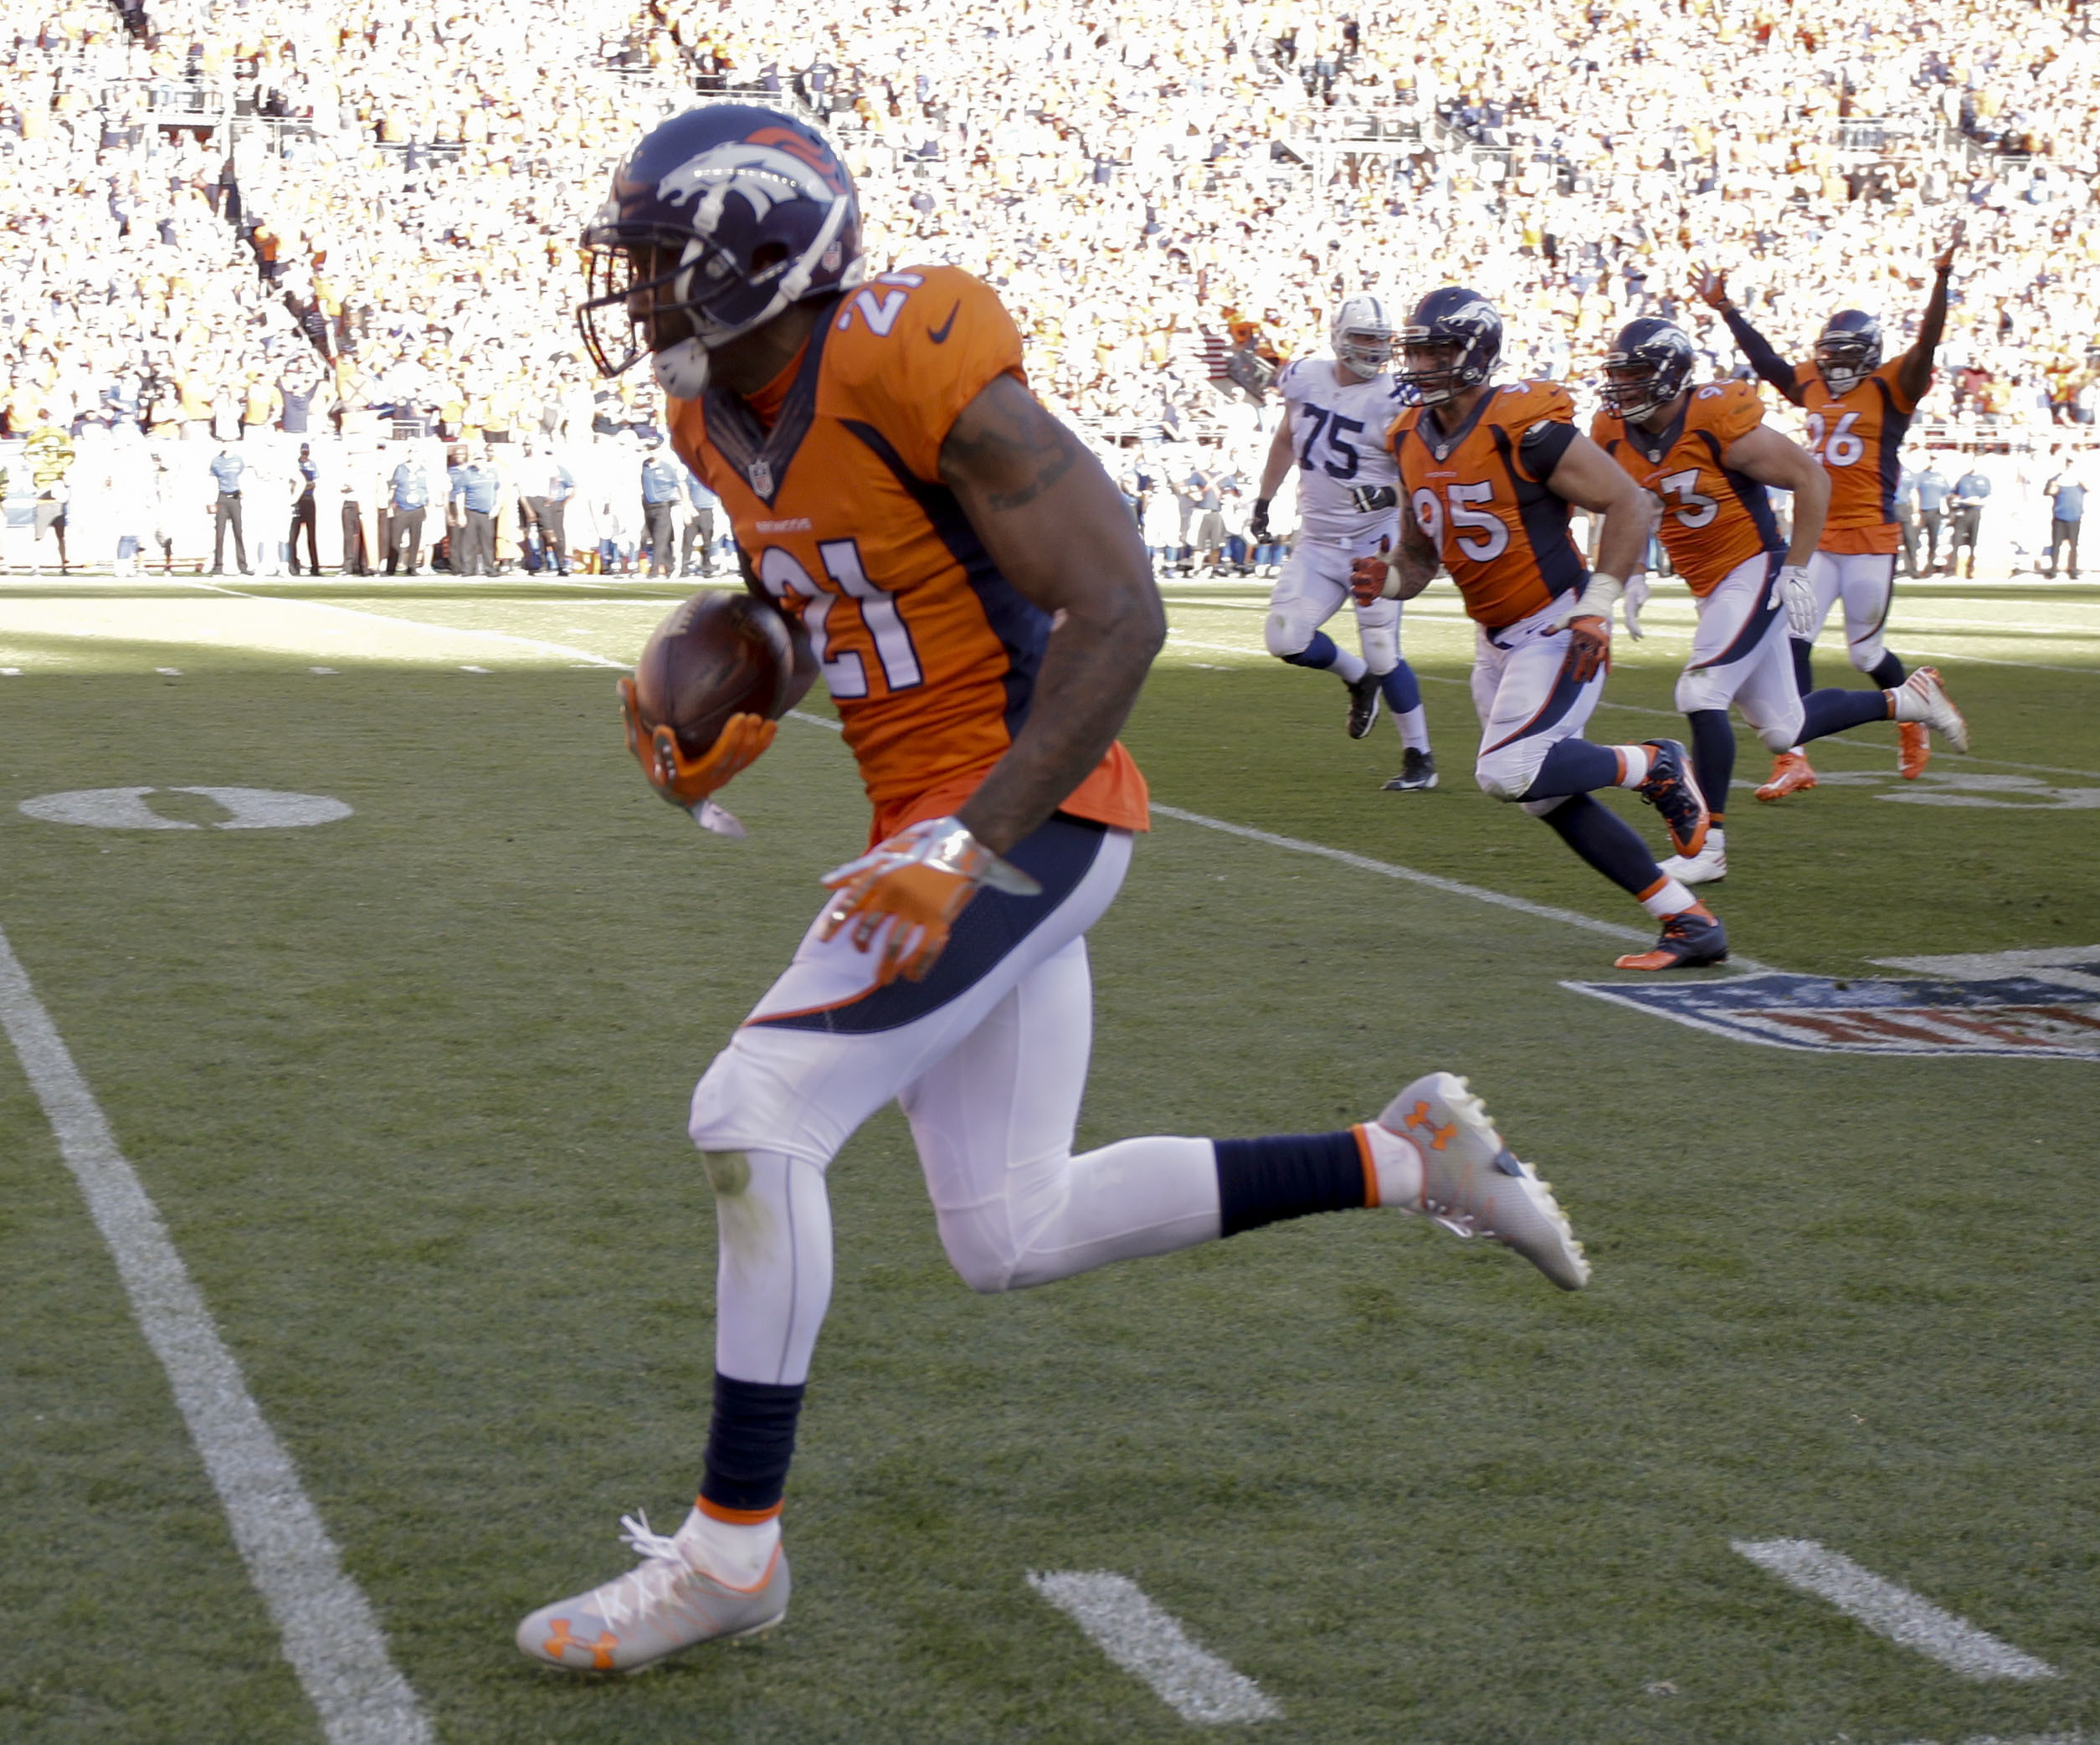 FILE - In this Sept. 18, 2016, file photo, Denver Broncos cornerback Aqib Talib scores after a interception during the second half in a NFL football game against the Indianapolis Colts in Denver. Talib returns to Tampa for the first time with 31 intercept